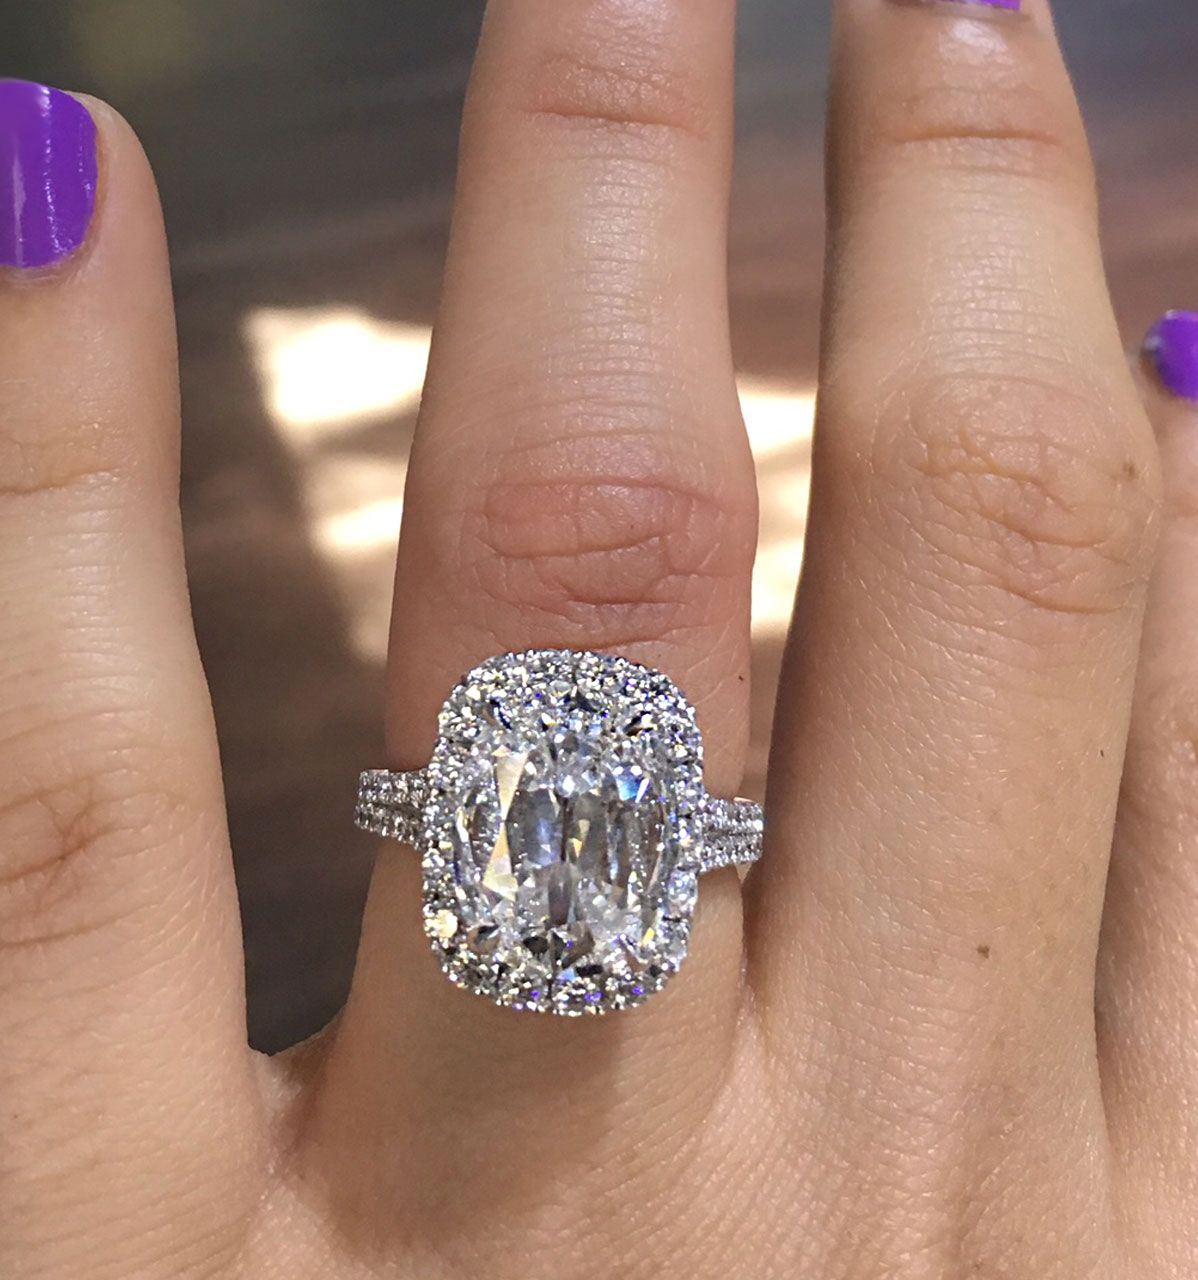 A 426ct Cushion Cut Is Surrounded By A Beautiful 114ctw Halo And Diamond  Band